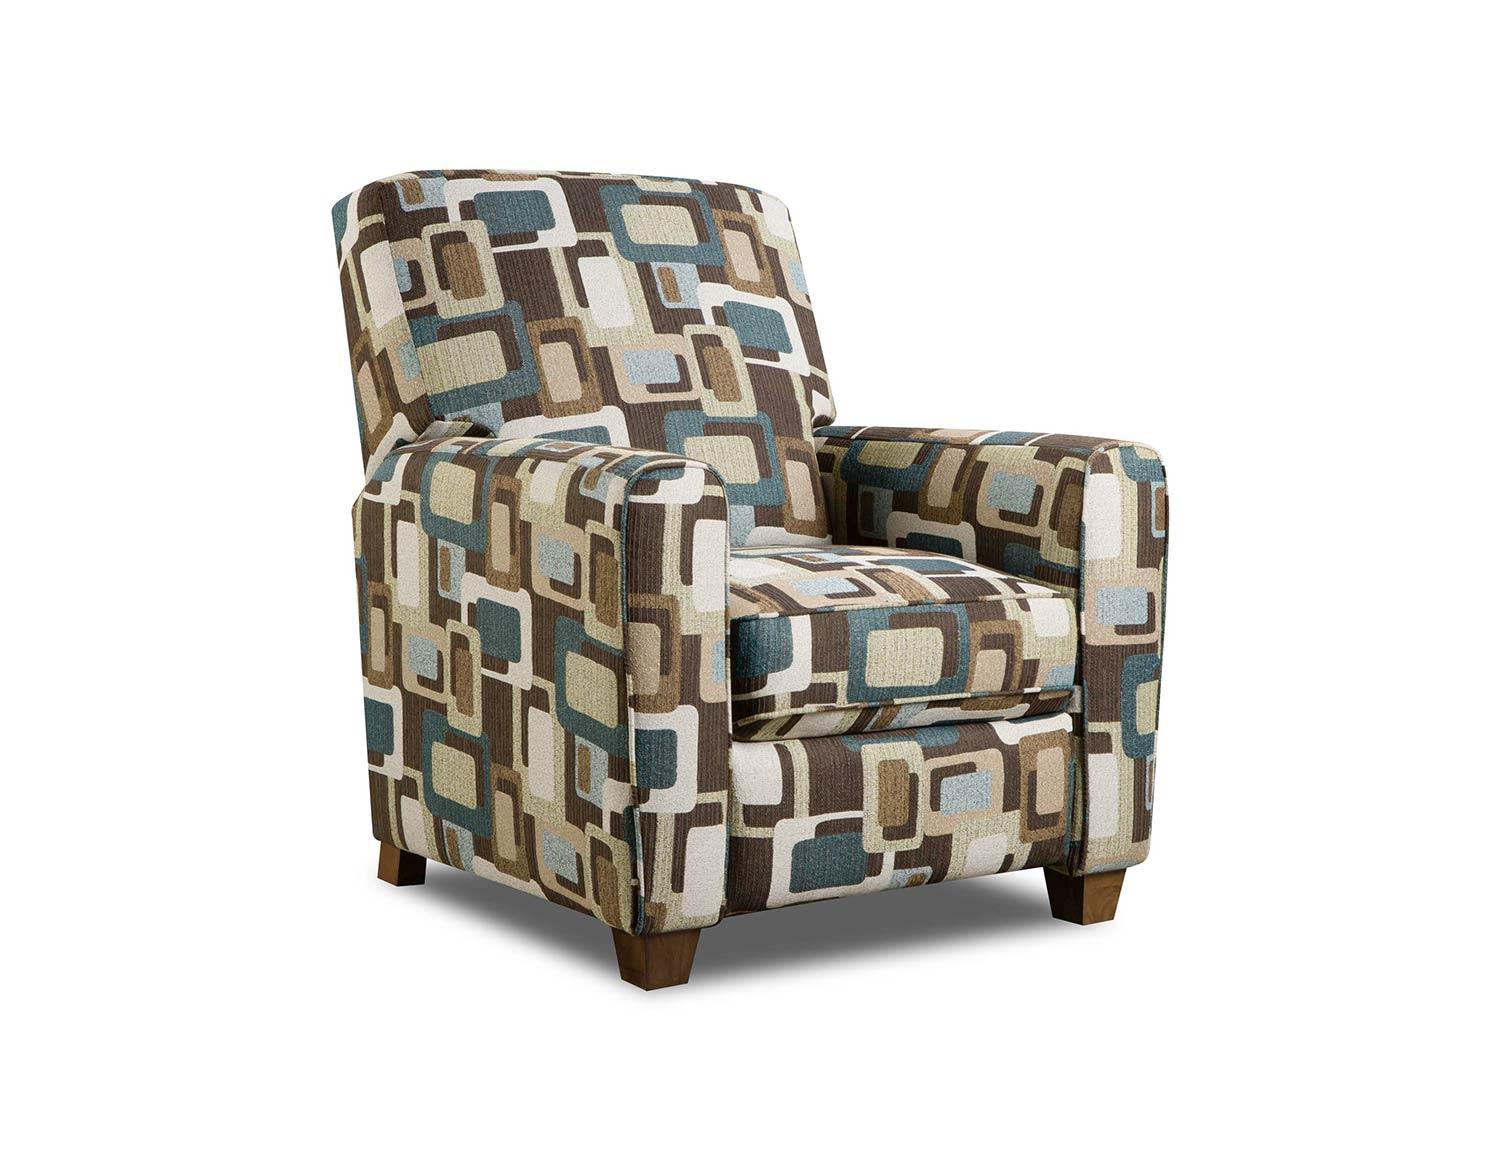 Admirable Chelsea Home Barras Recliner Chair Fusion Teal Pdpeps Interior Chair Design Pdpepsorg